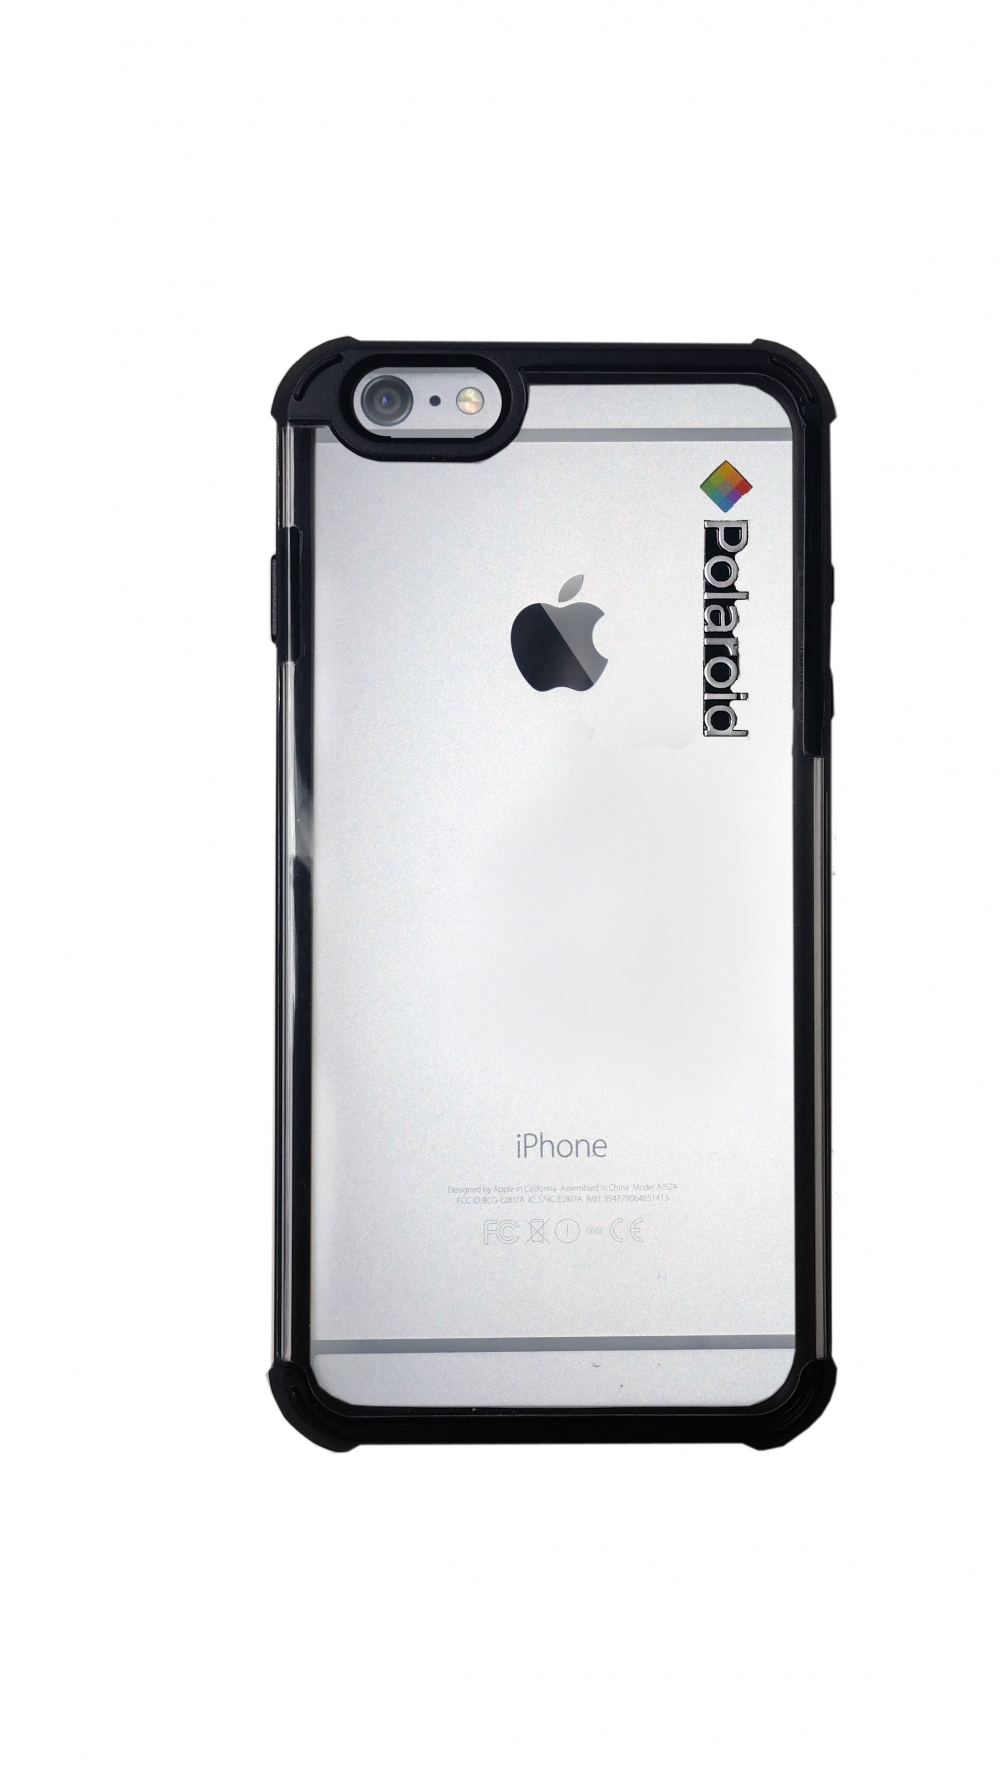 Polaroid Case for iPhone 6/7/8s(transparent)